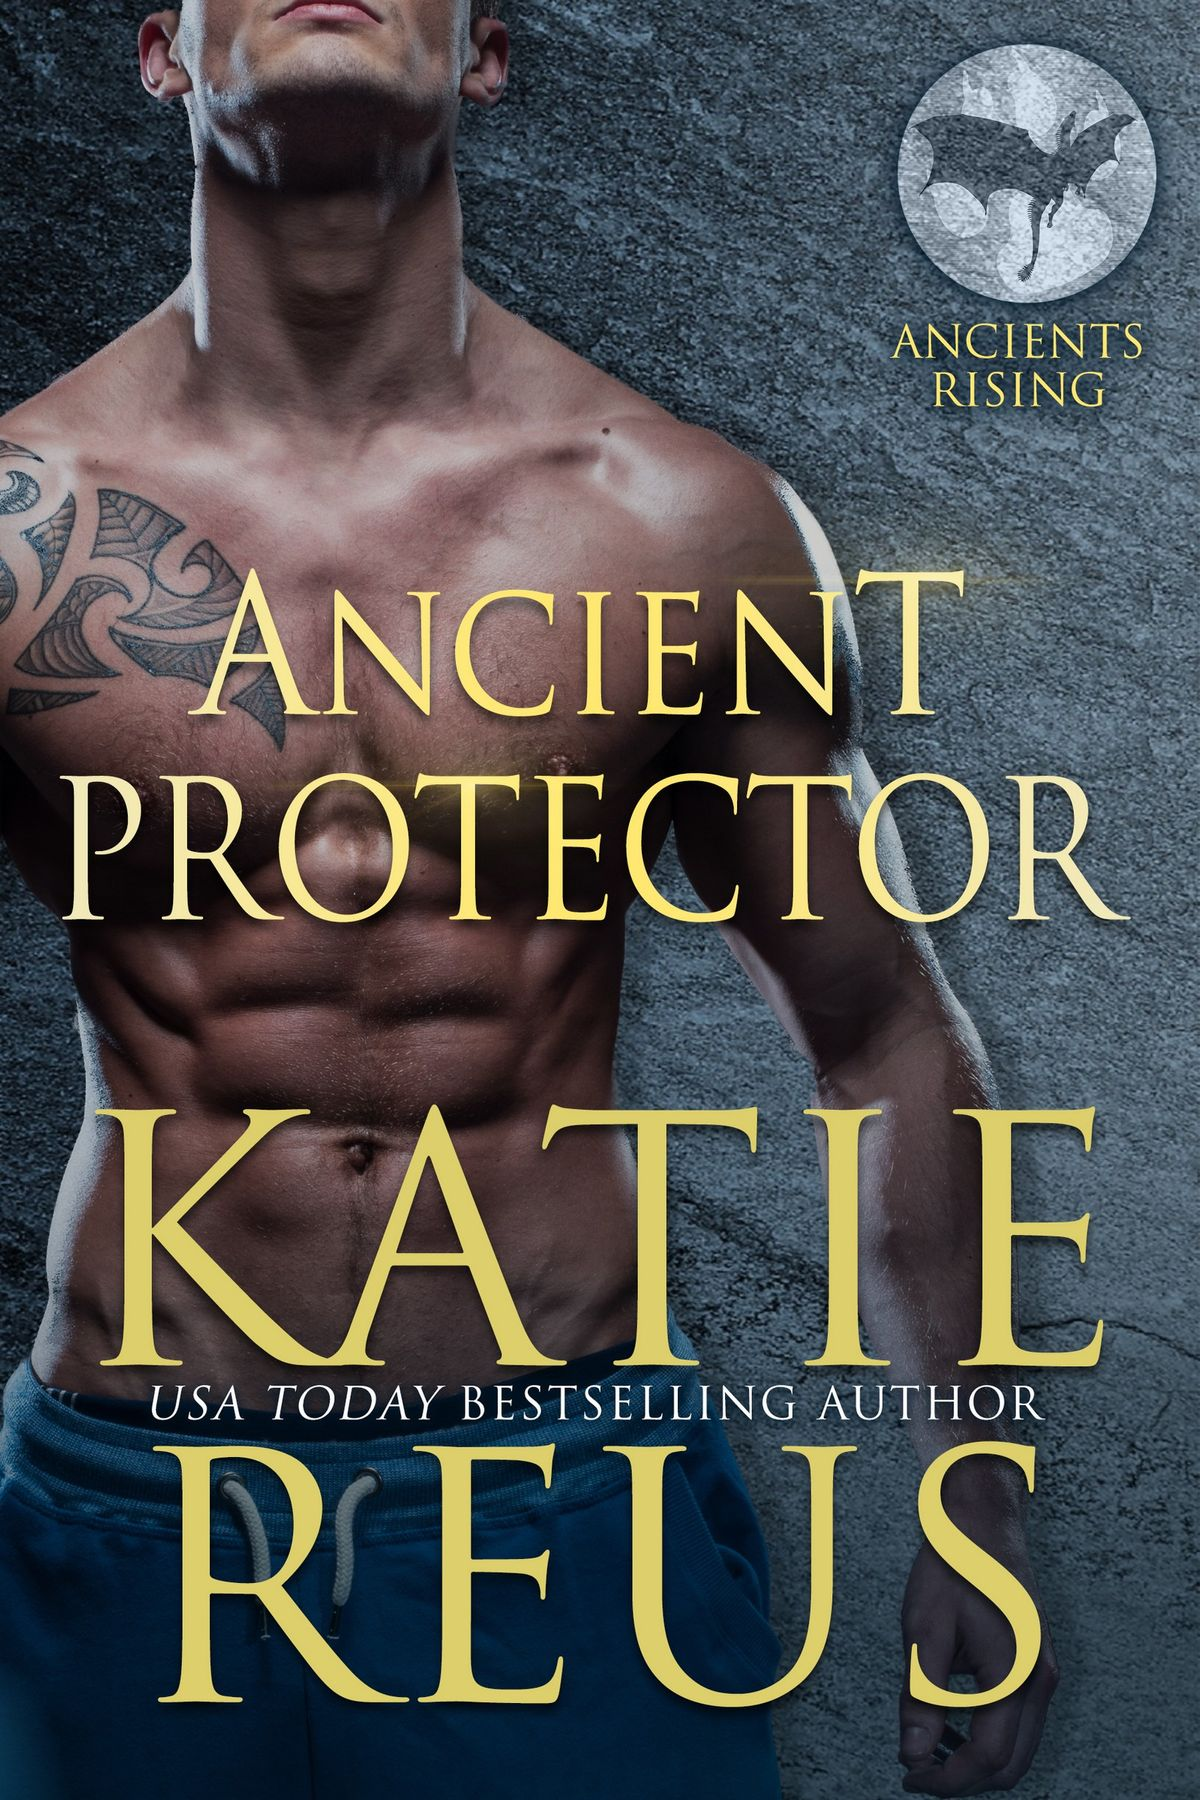 REVIEW: KATIE REUS – ANCIENT PROTECTOR